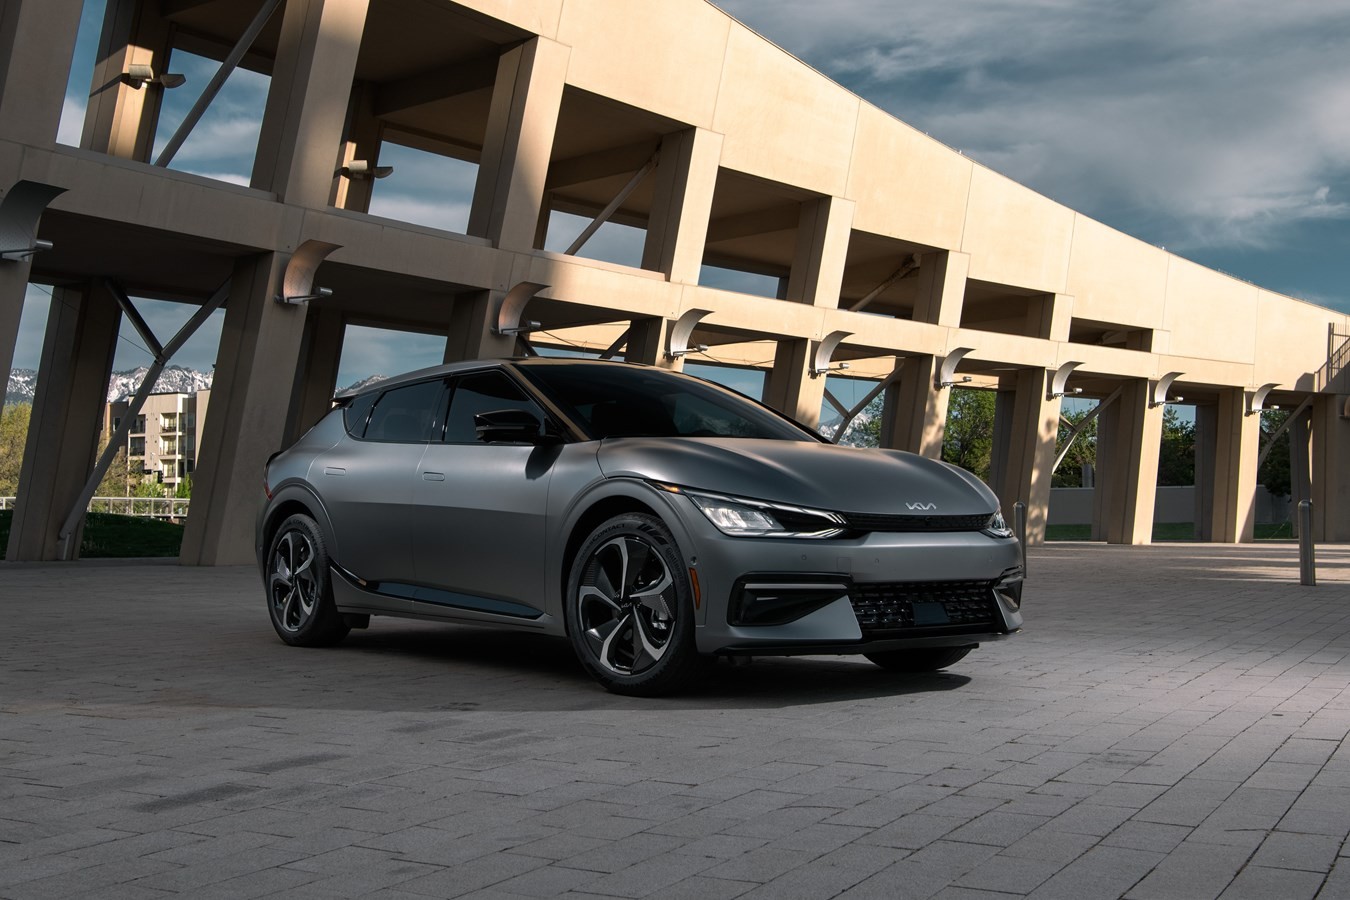 Kia's fast-charging EV6 electric crossover is coming to the U.S. in early 2022